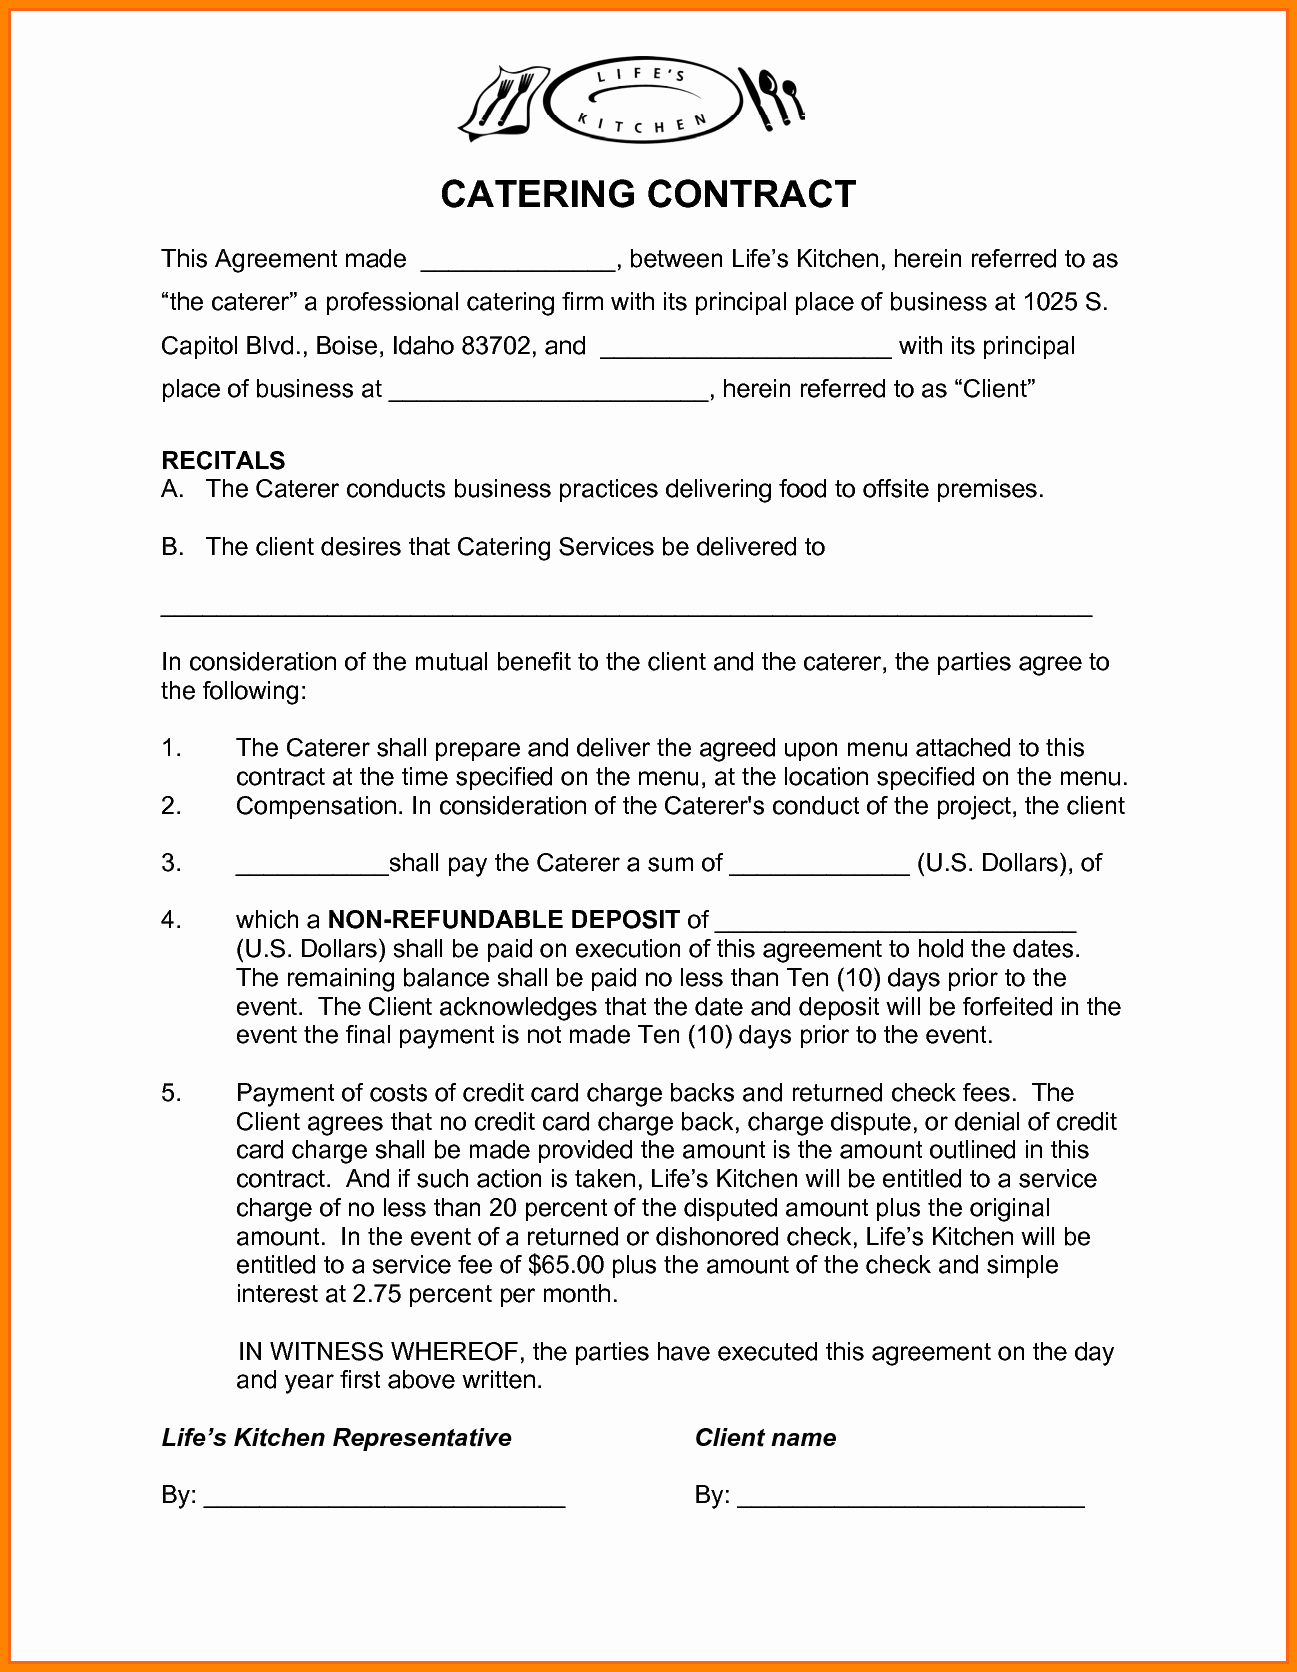 Catering Contract Template Free Lovely Contract S Catering Contract Template Catering